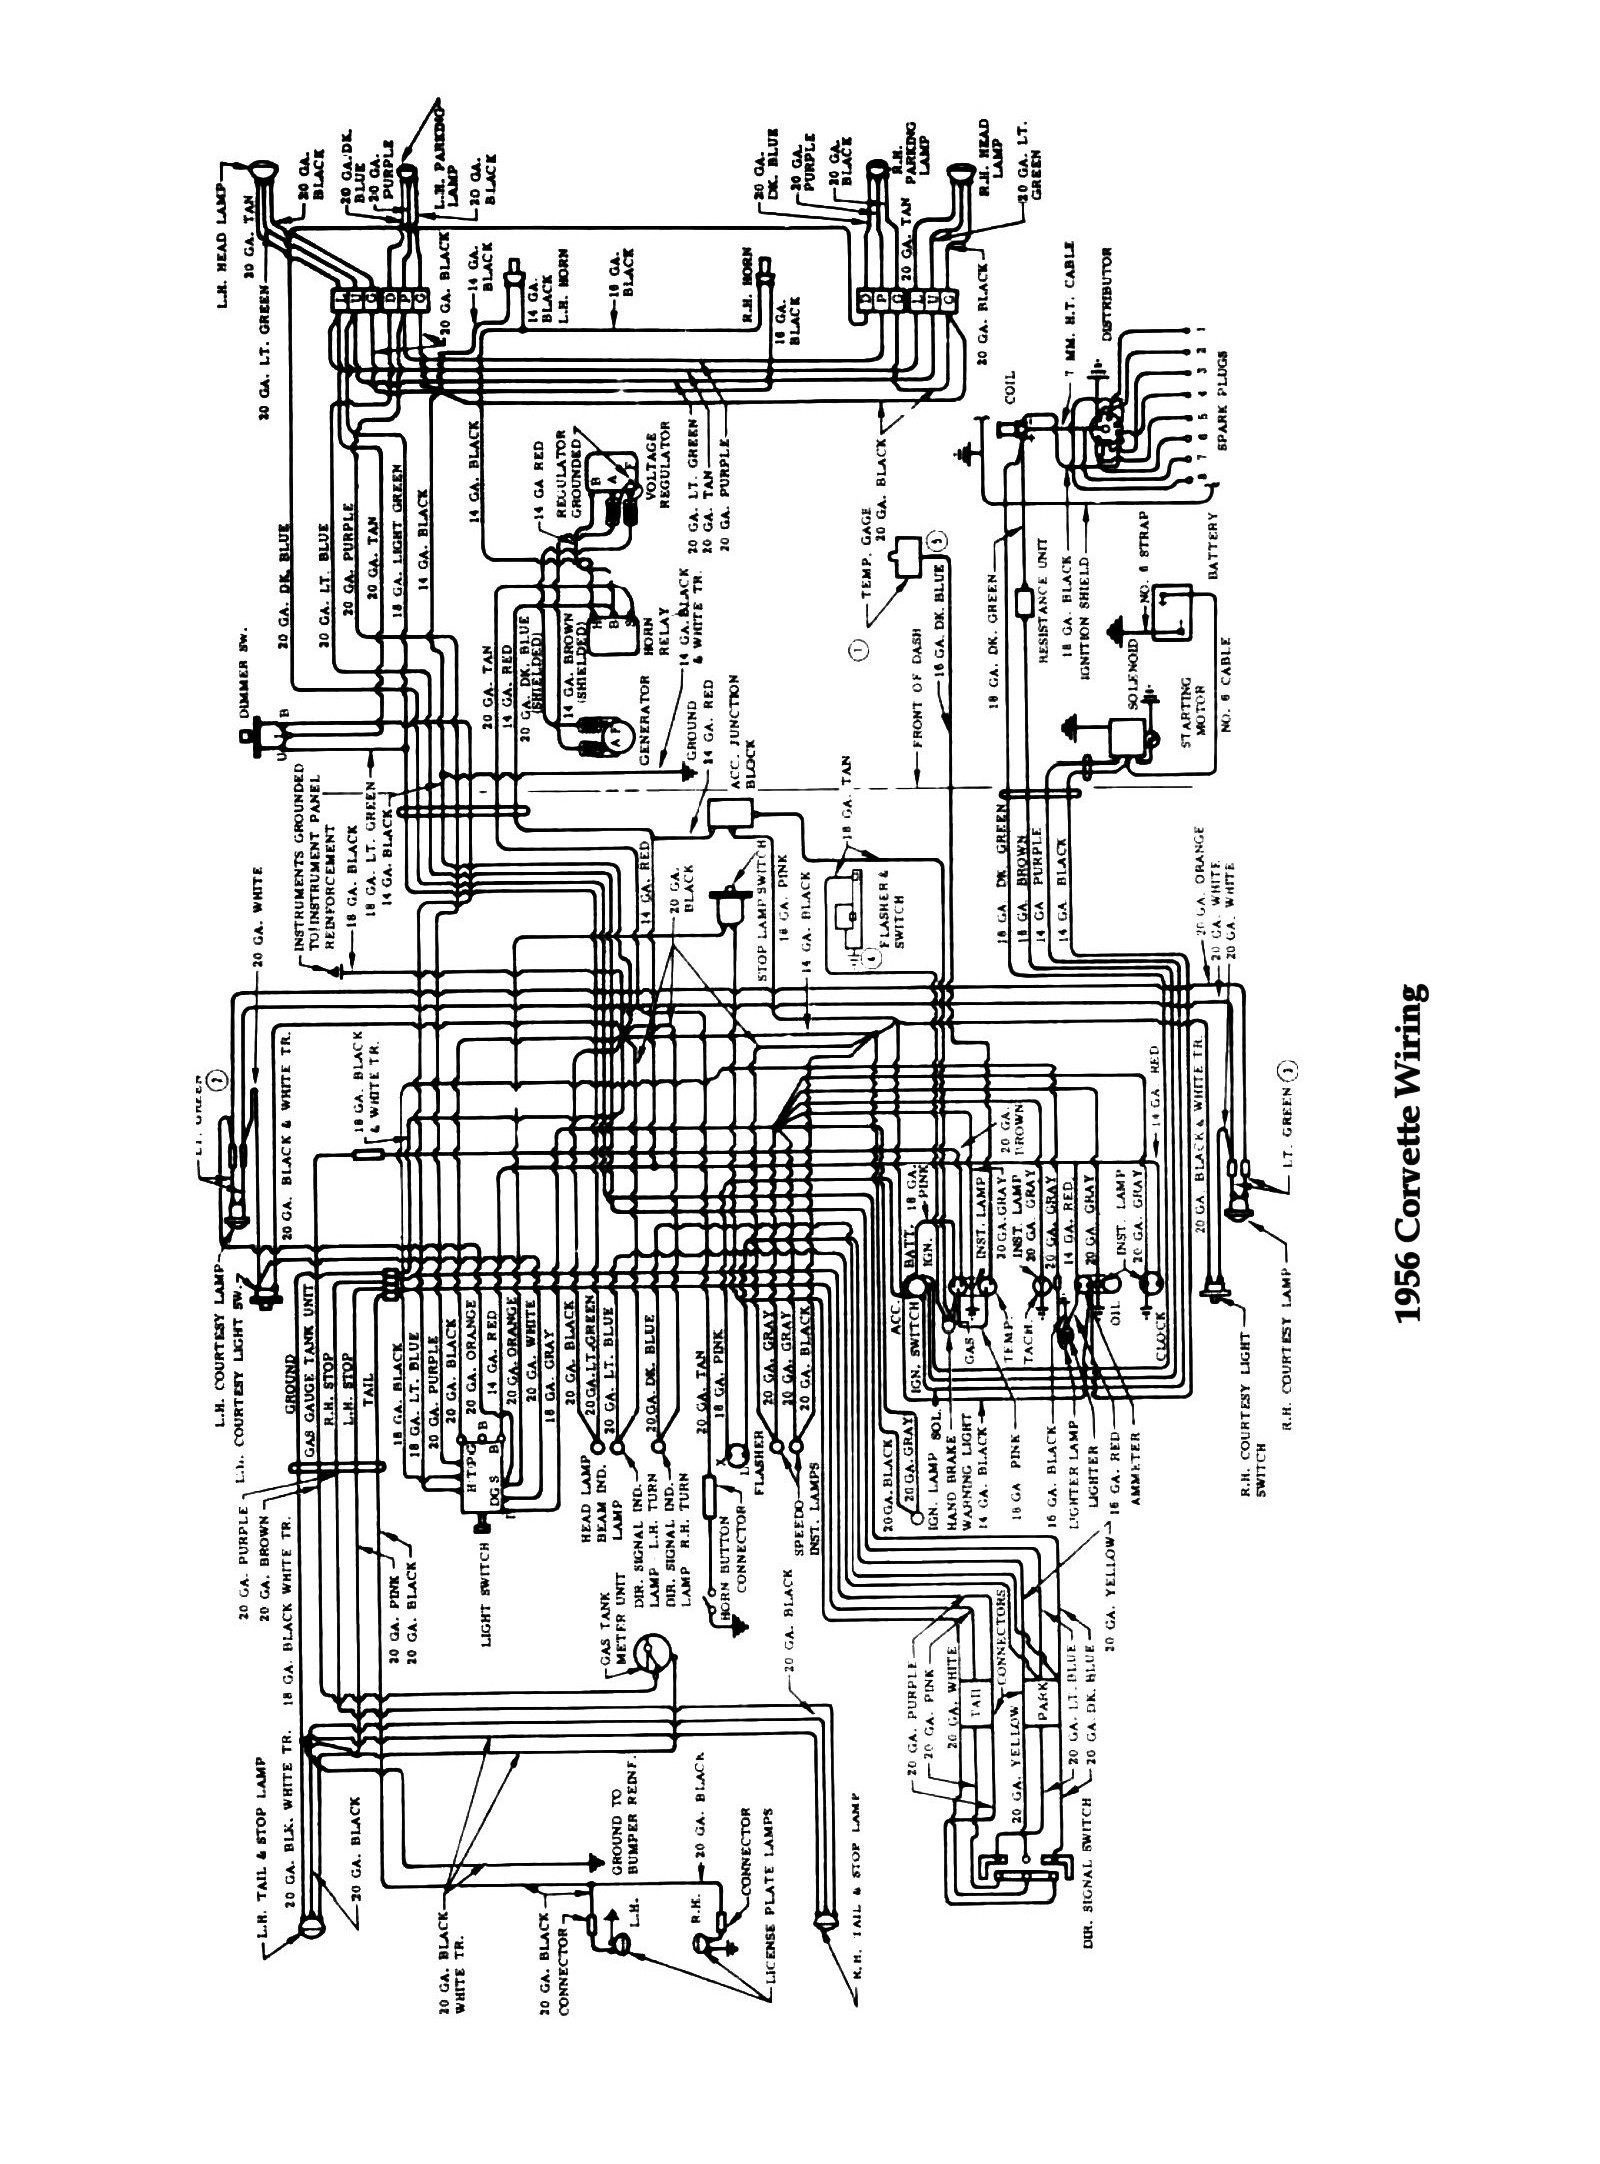 Kenwood Kdc Mp242 Wiring Diagram from static-cdn.imageservice.cloud